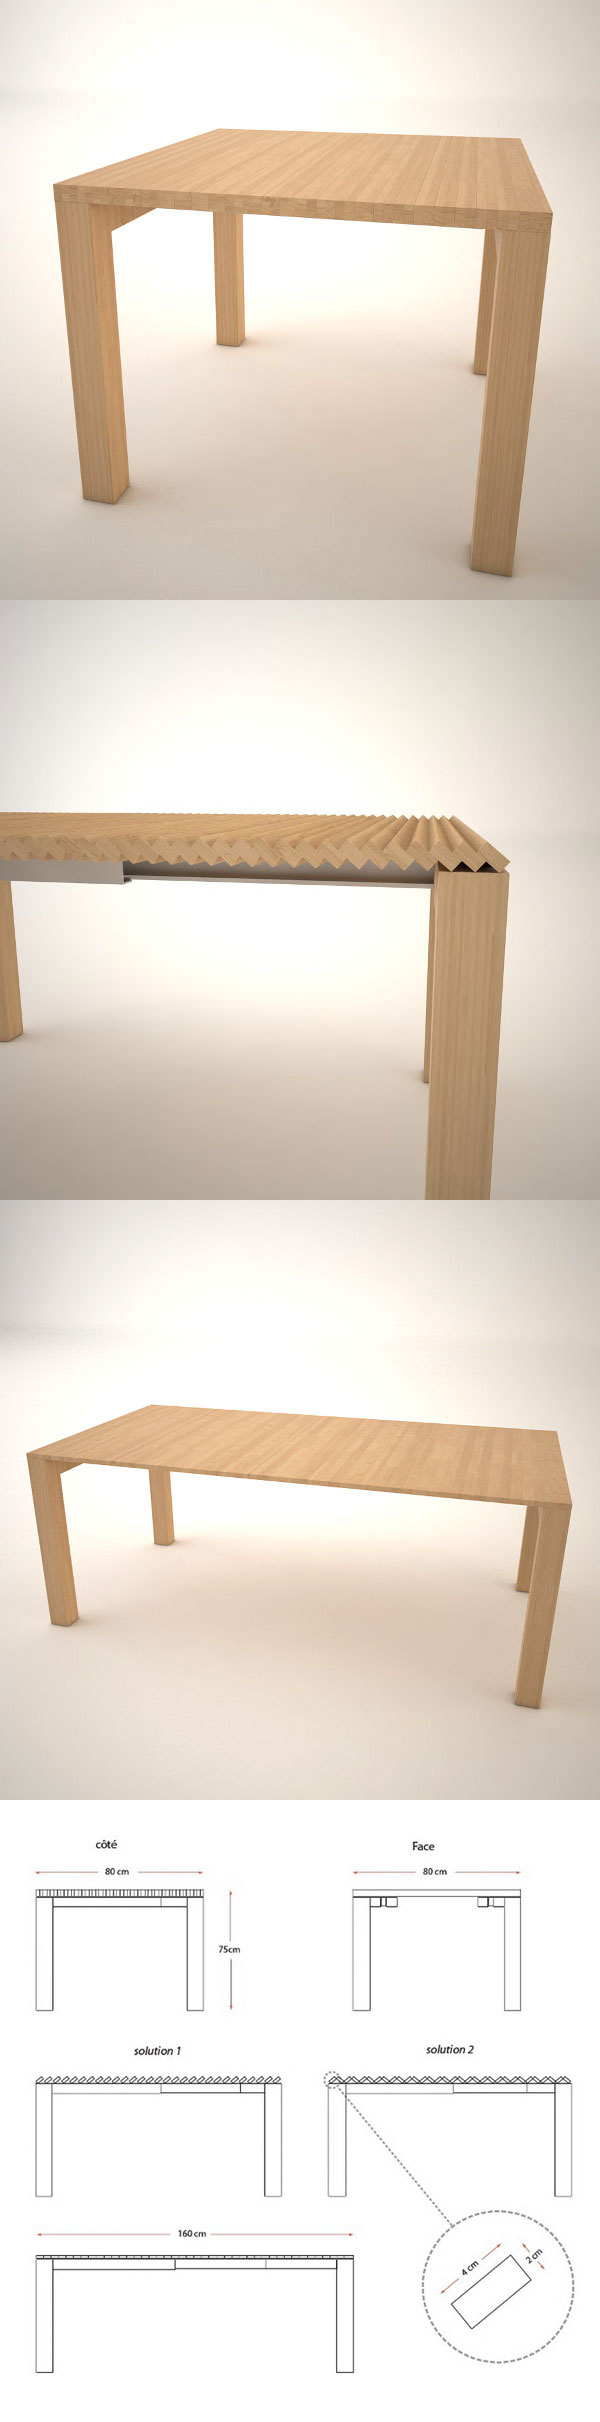 4-Expandable-dining-table